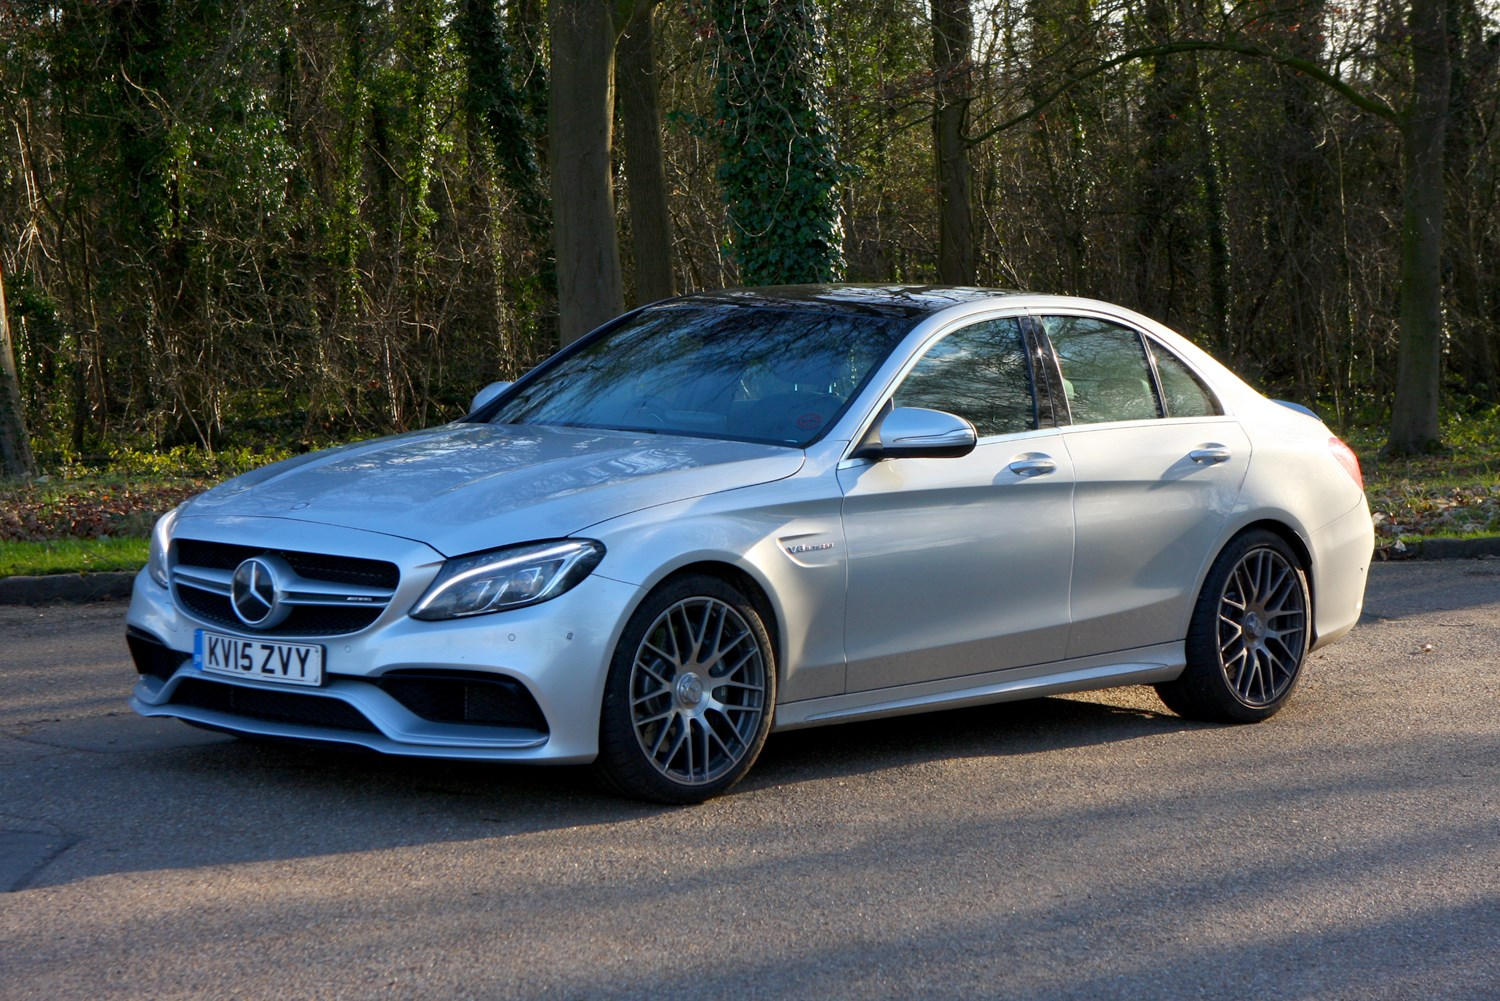 Mercedes Benz C Class Amg 2015 Driving Performance